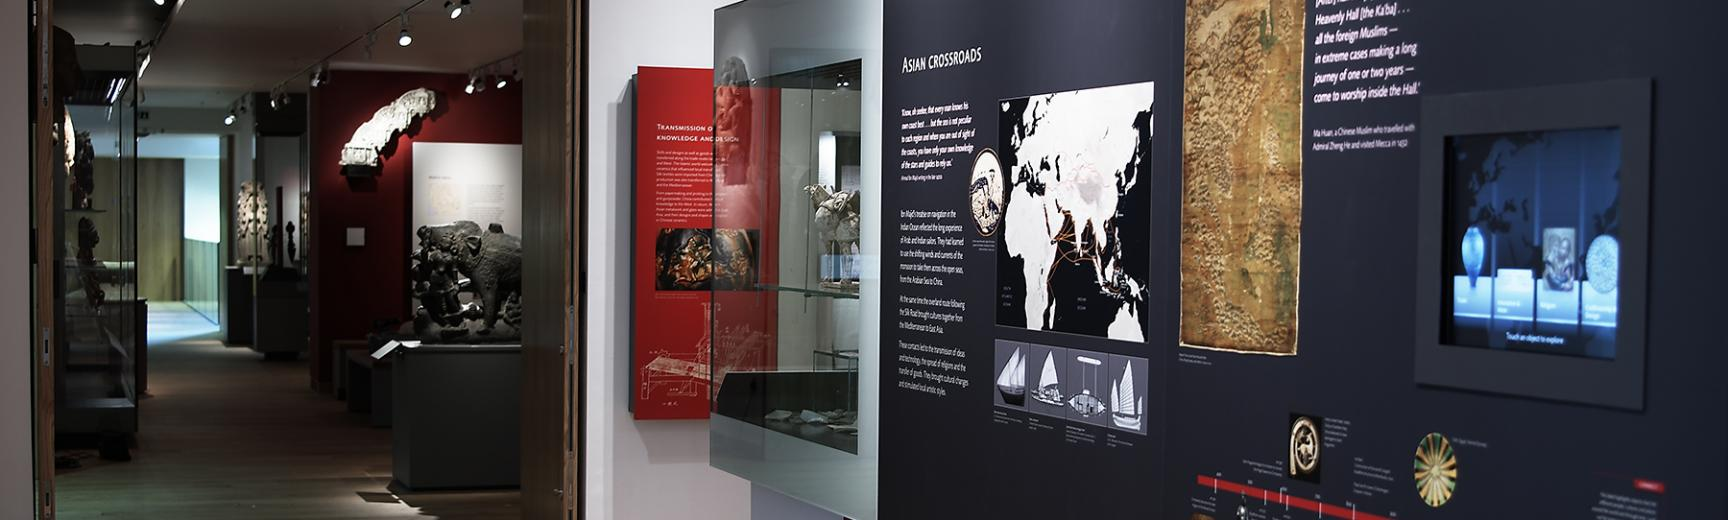 The Asian Crossroads Gallery at the Ashmolean Museum